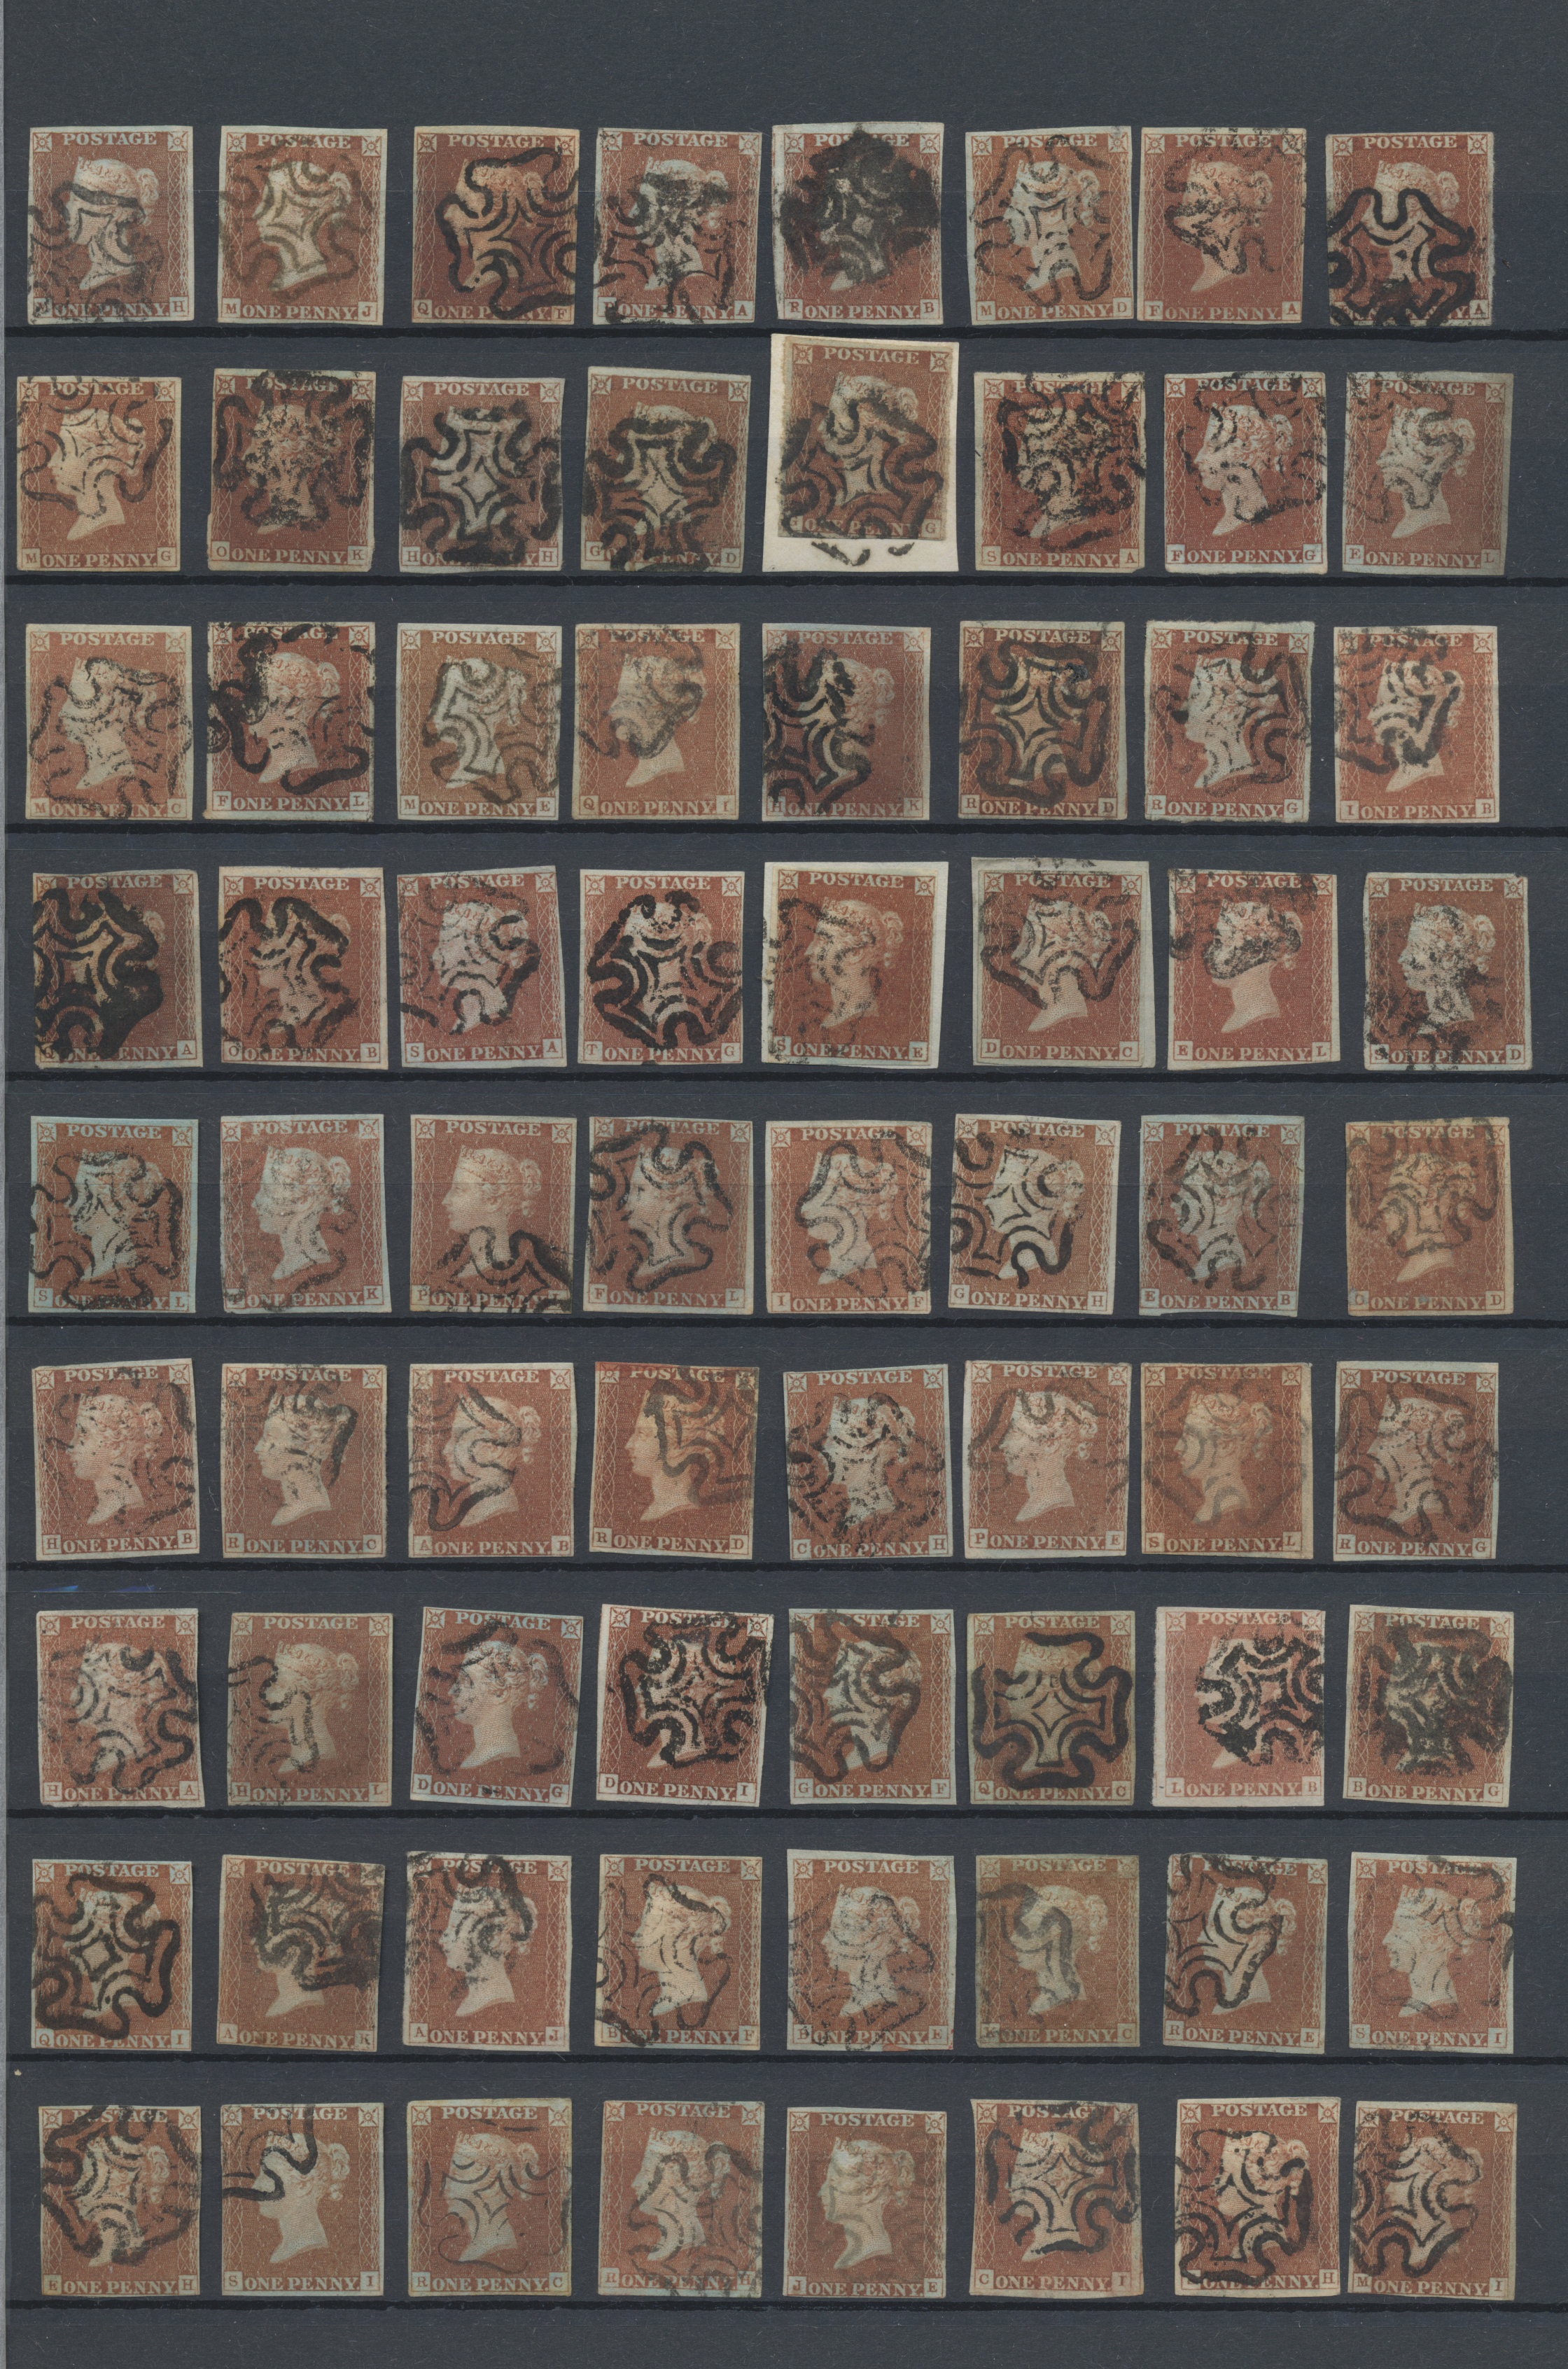 Lot 01823 - großbritannien  -  Auktionshaus Christoph Gärtner GmbH & Co. KG Special Auction 26.- 28. May 2020 Day 2 Collections Part 2